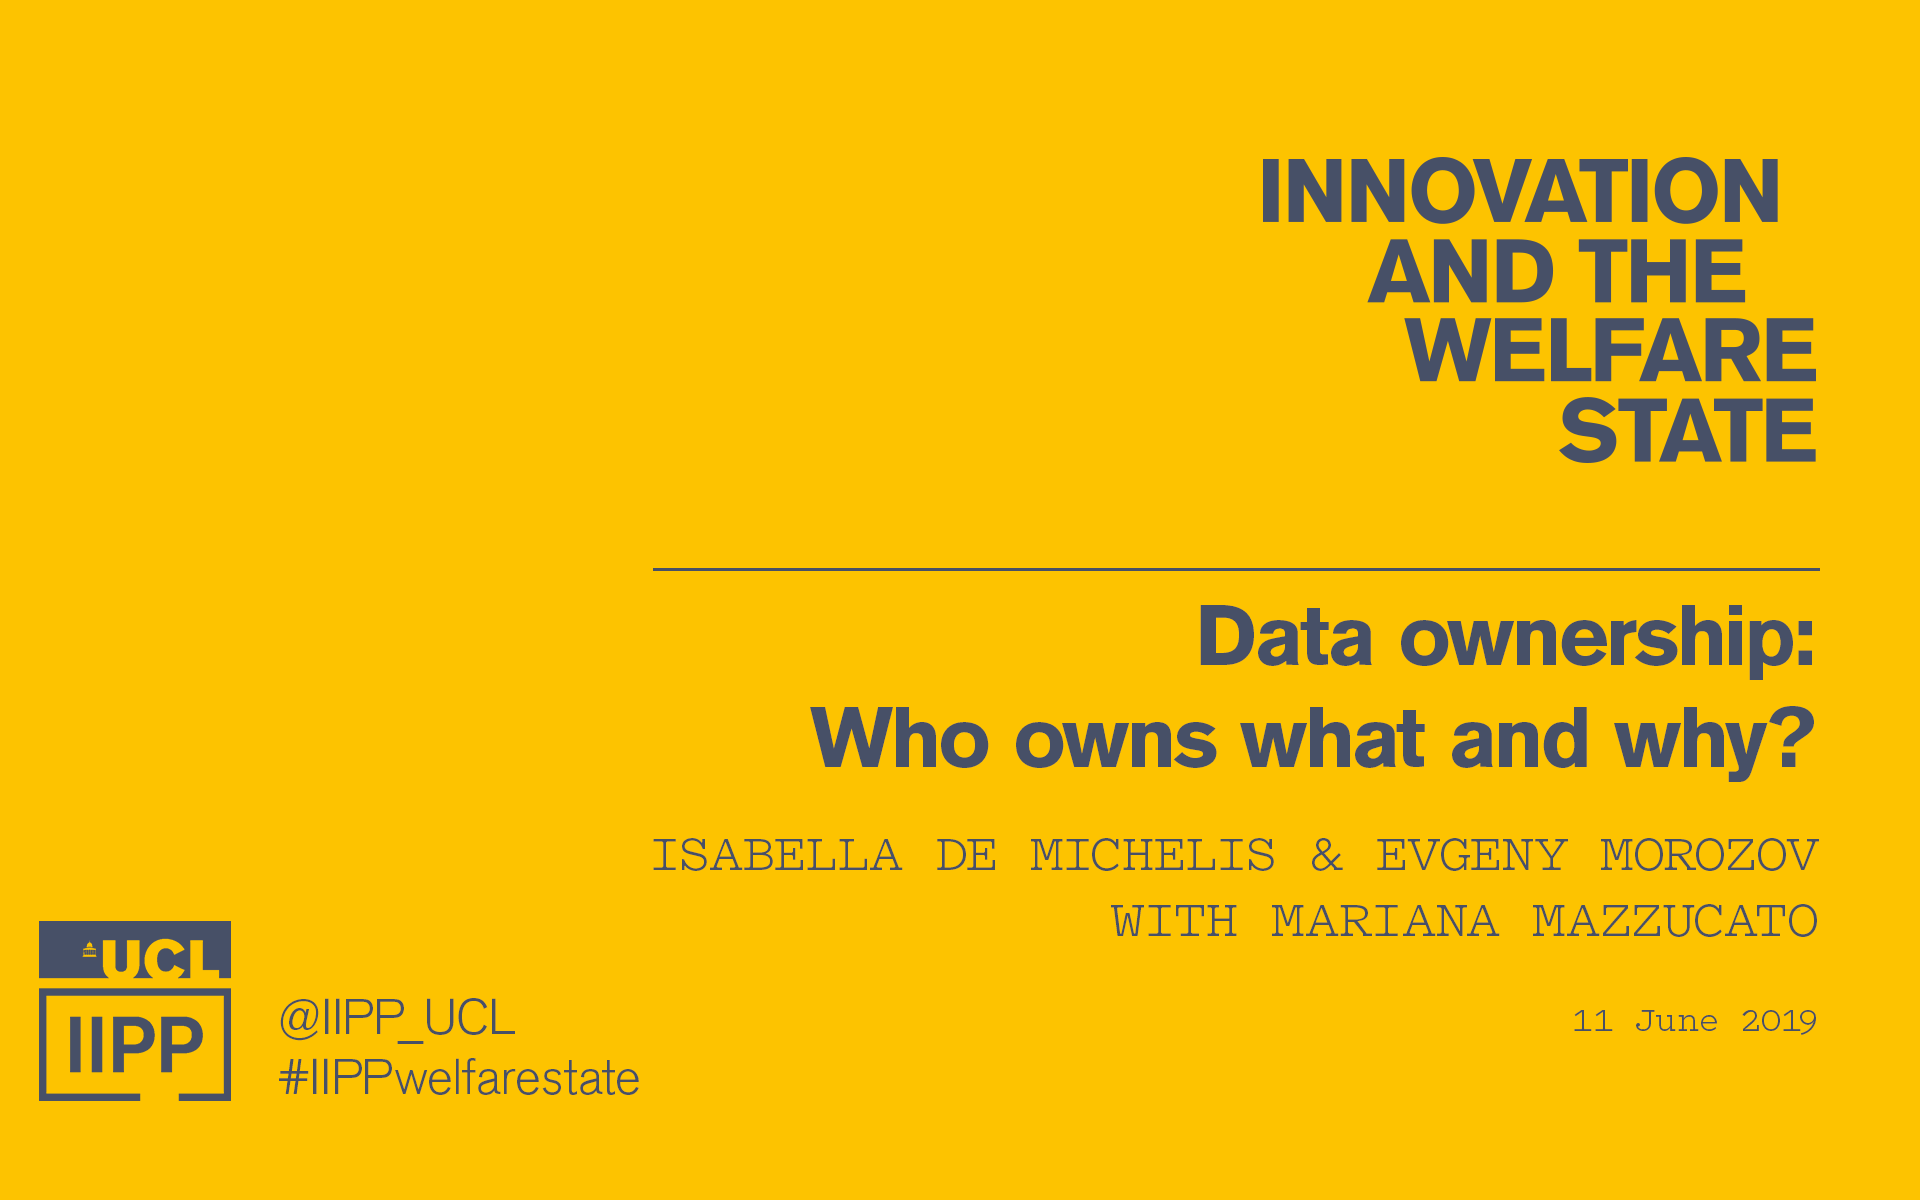 Data ownership event